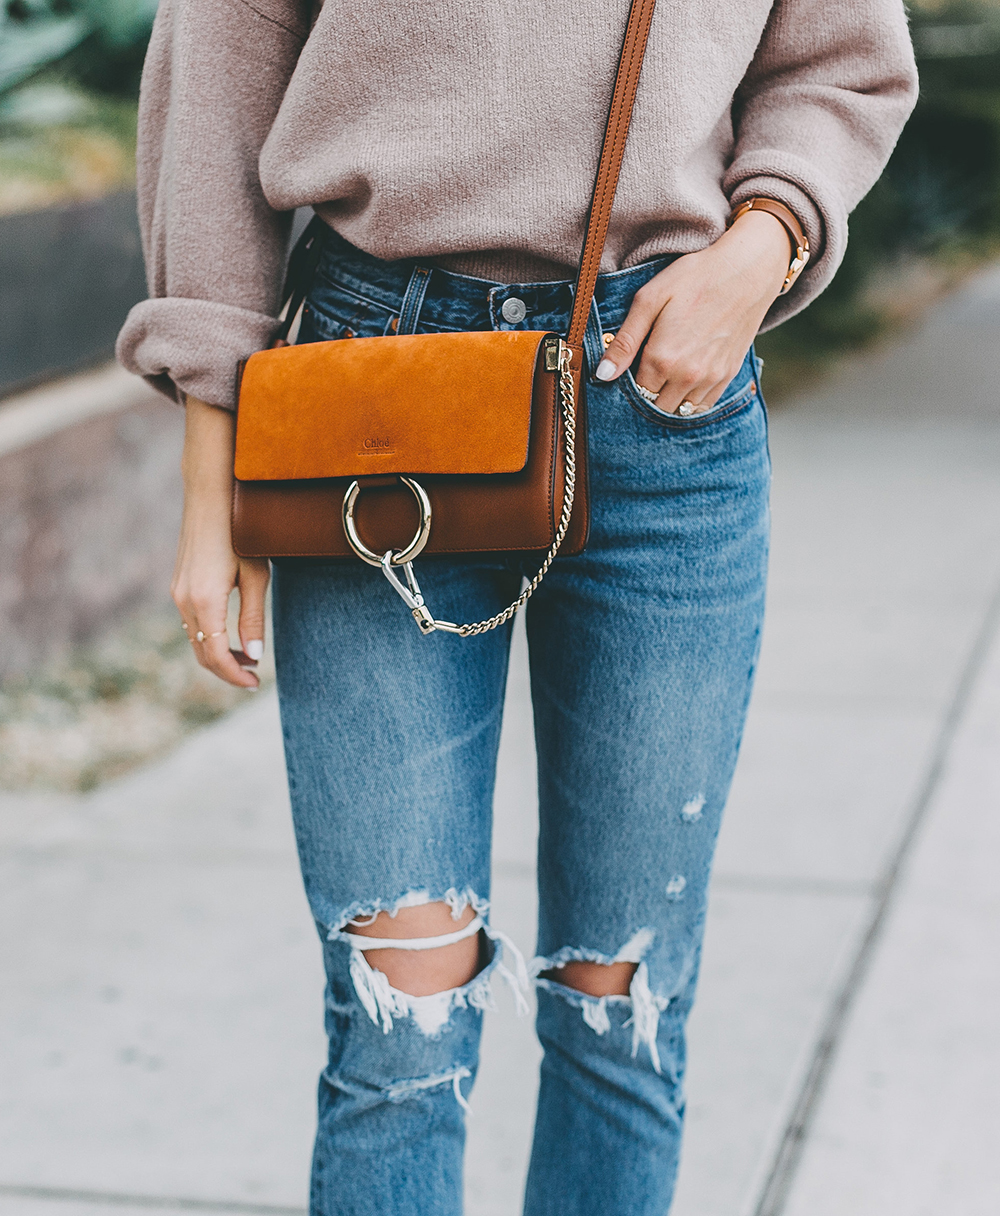 livvyland-blog-olivia-watson-mauve-mock-neck-sweater-levis-501-jeans-urban-outfitters-fortress-of-inca-tan-leather-slides-4